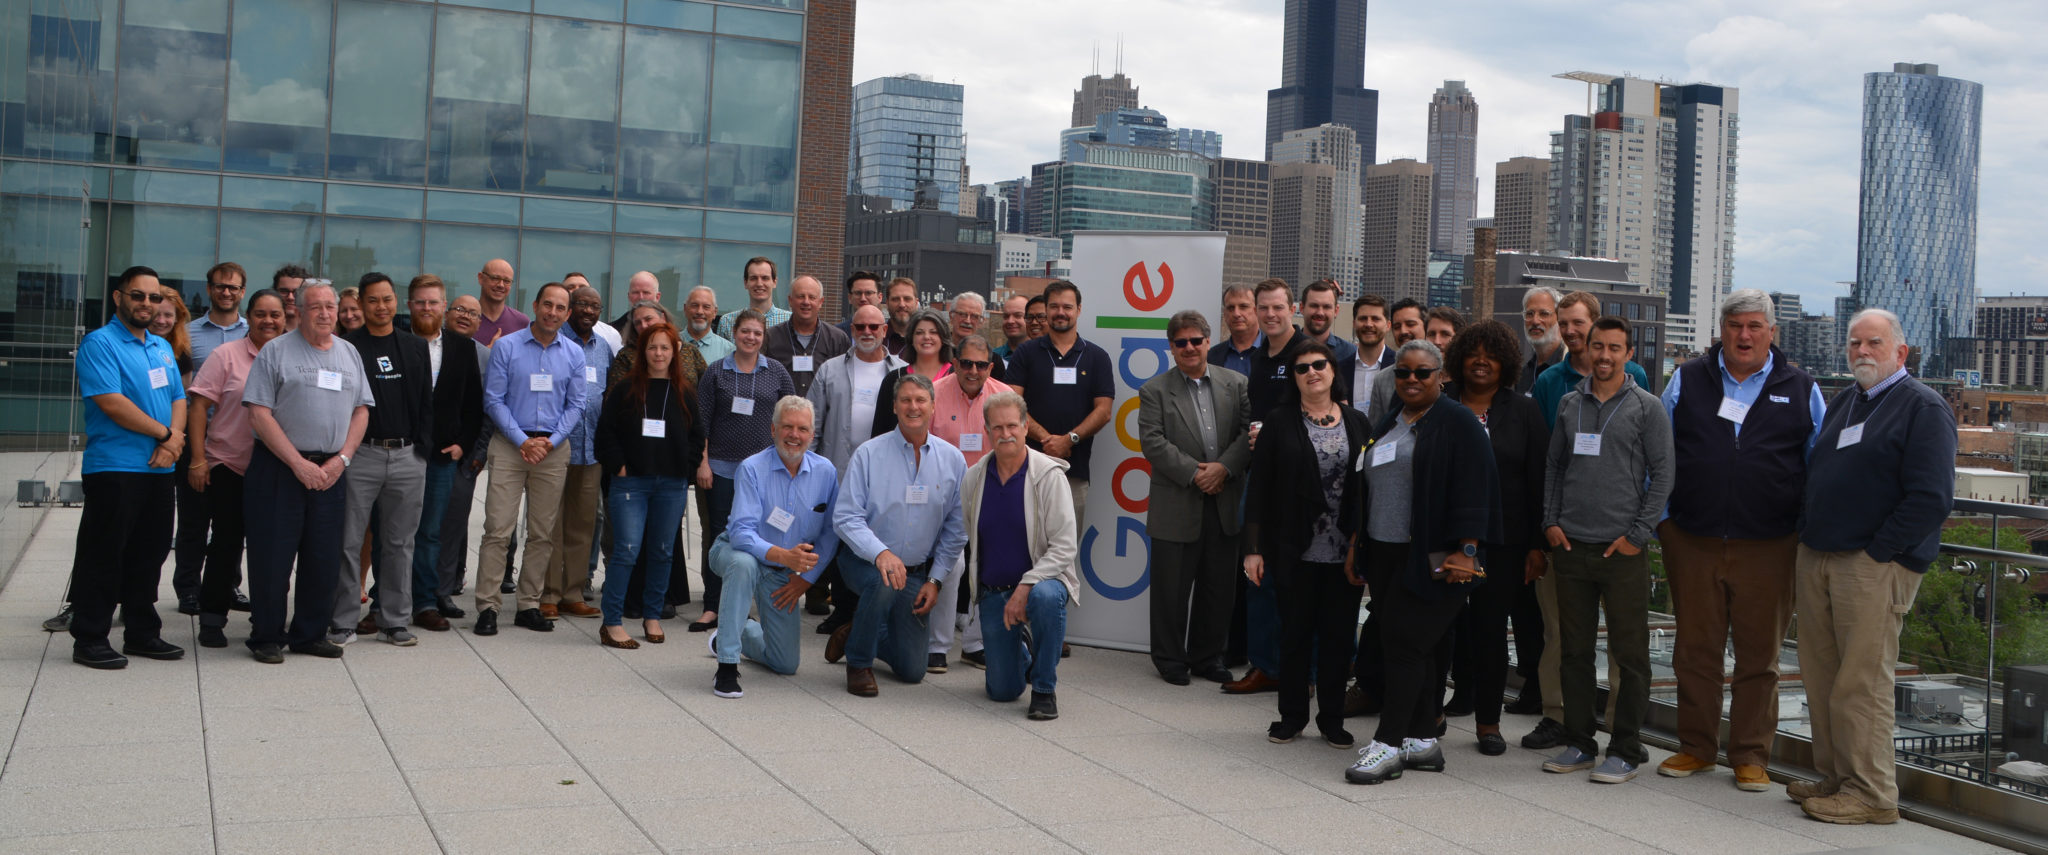 AFTRR 2019 Chicago Conference Attendees